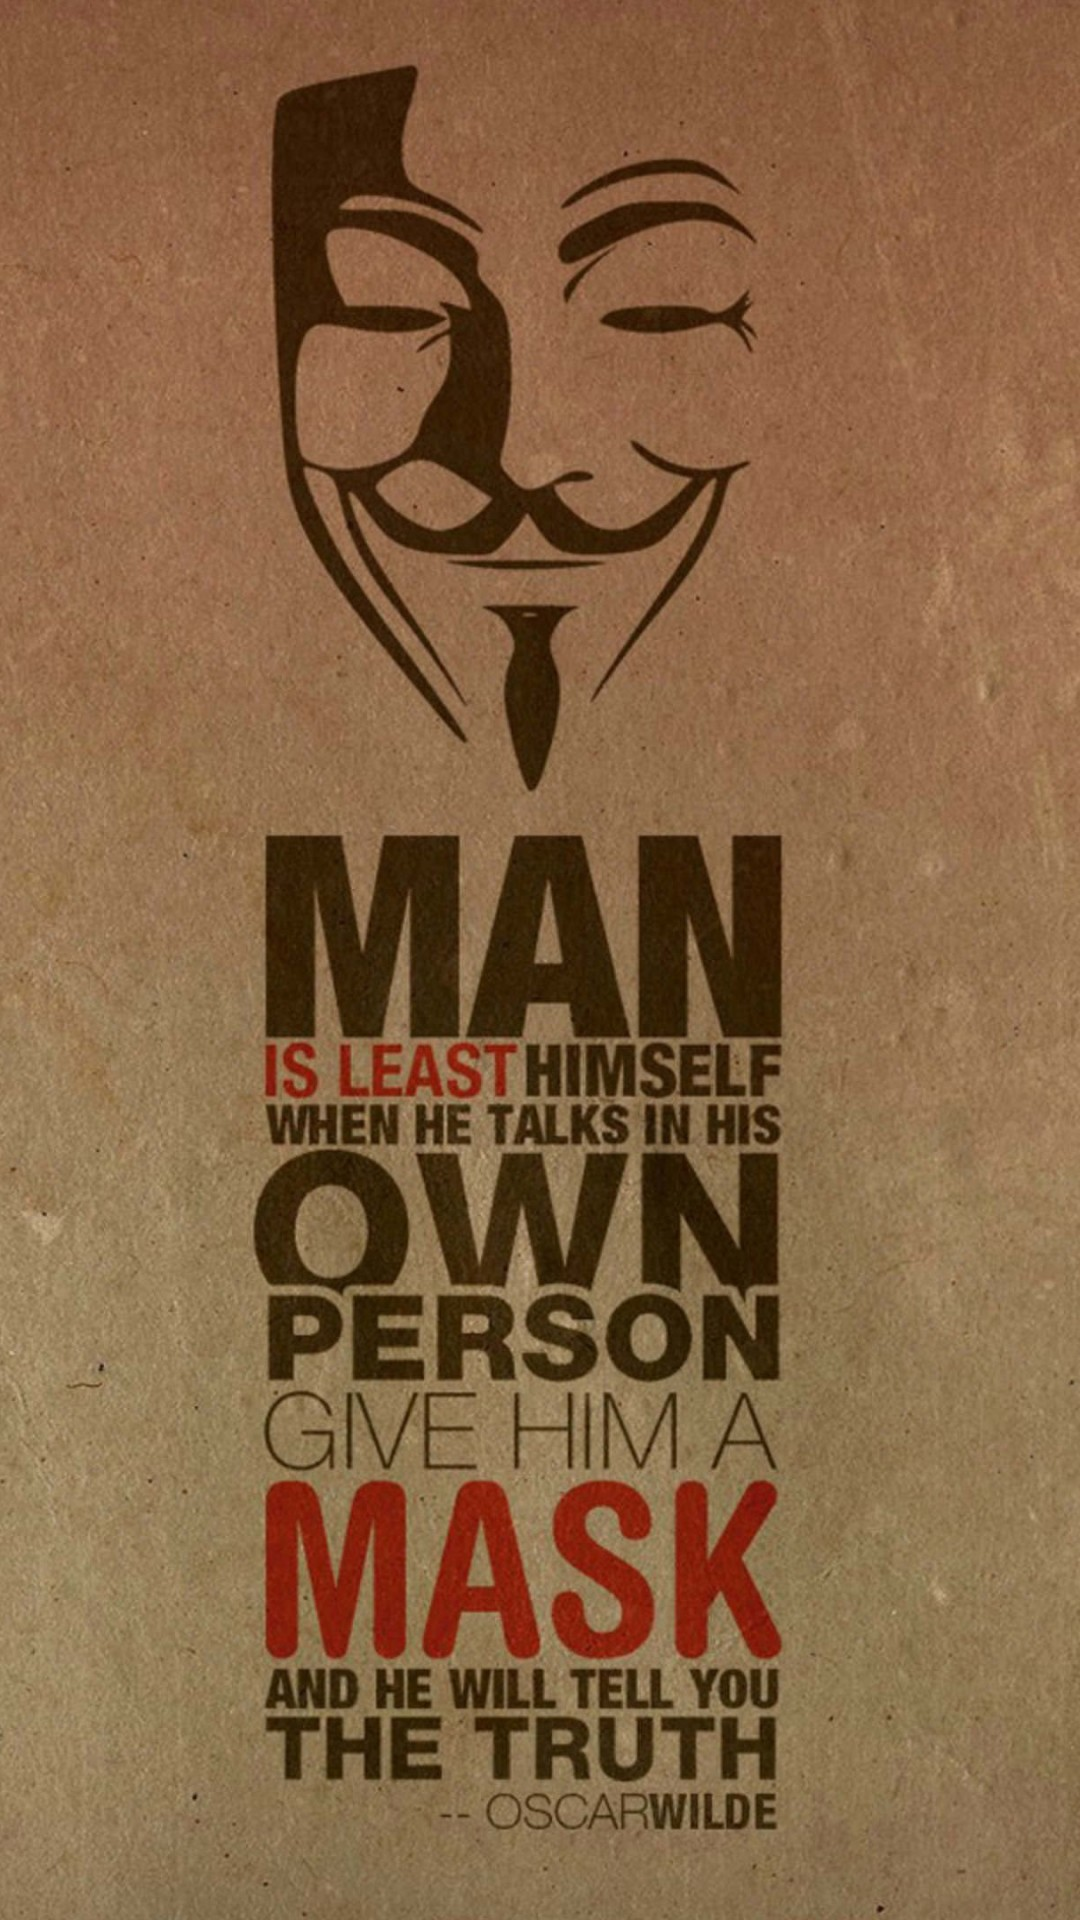 Anonymous Oscar Wilde Quote Wallpaper for Motorola Moto X